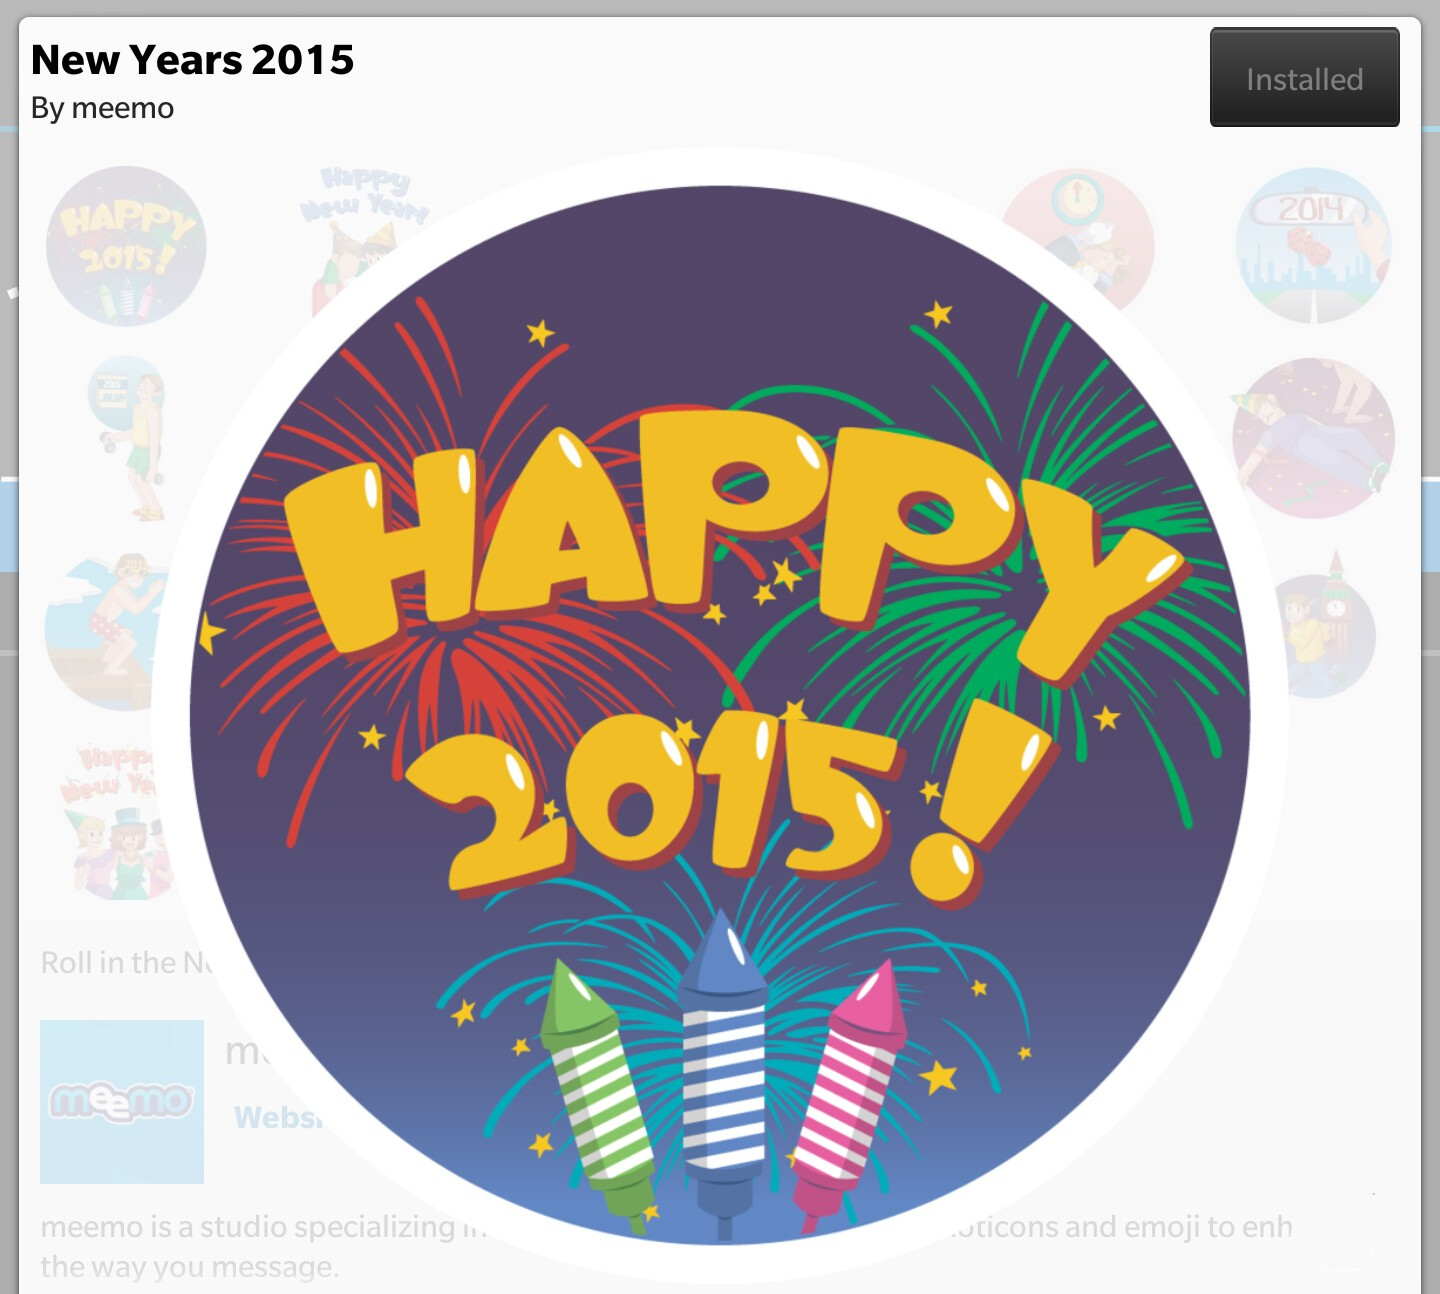 Get ready for 2015 with the New Years BBM sticker pack